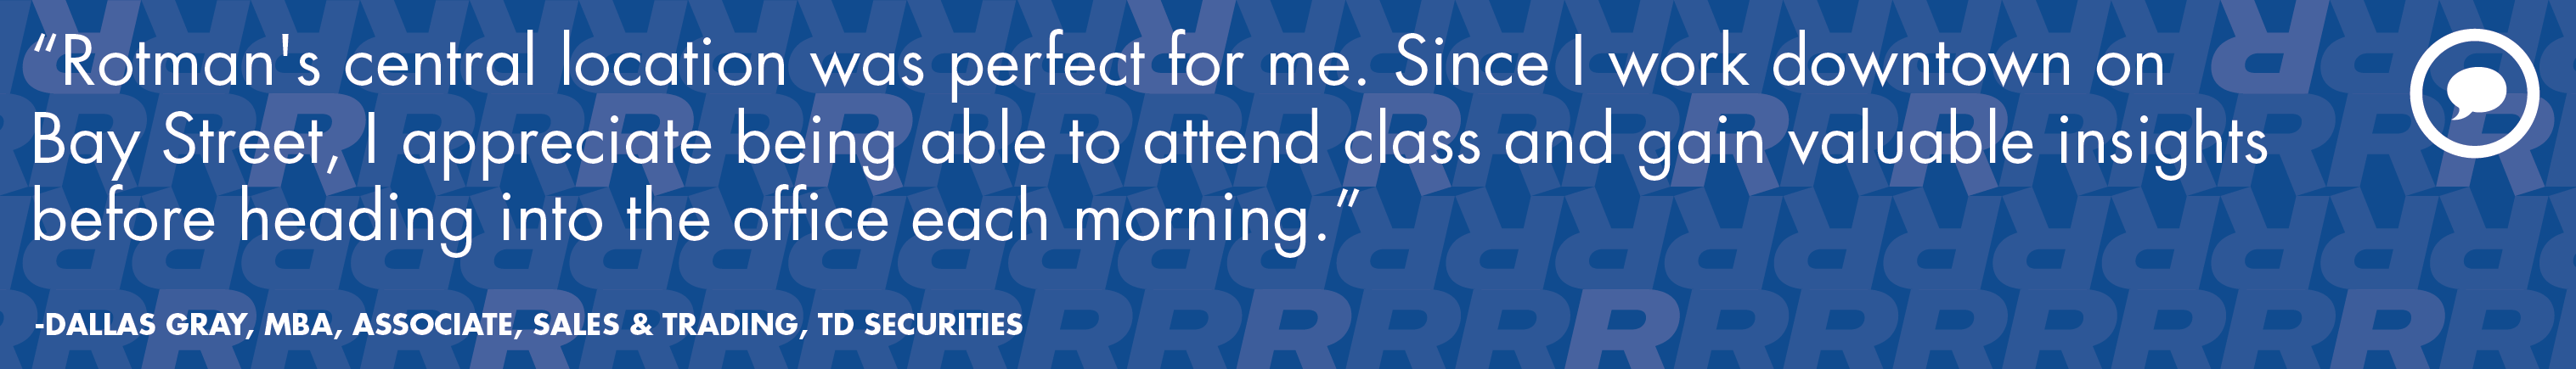 """Rotman's central location was perfect for me. Since I work downtown on Bay Street, I appreciate being able to attend class and gain valuable insights before heading into the office each morning."""